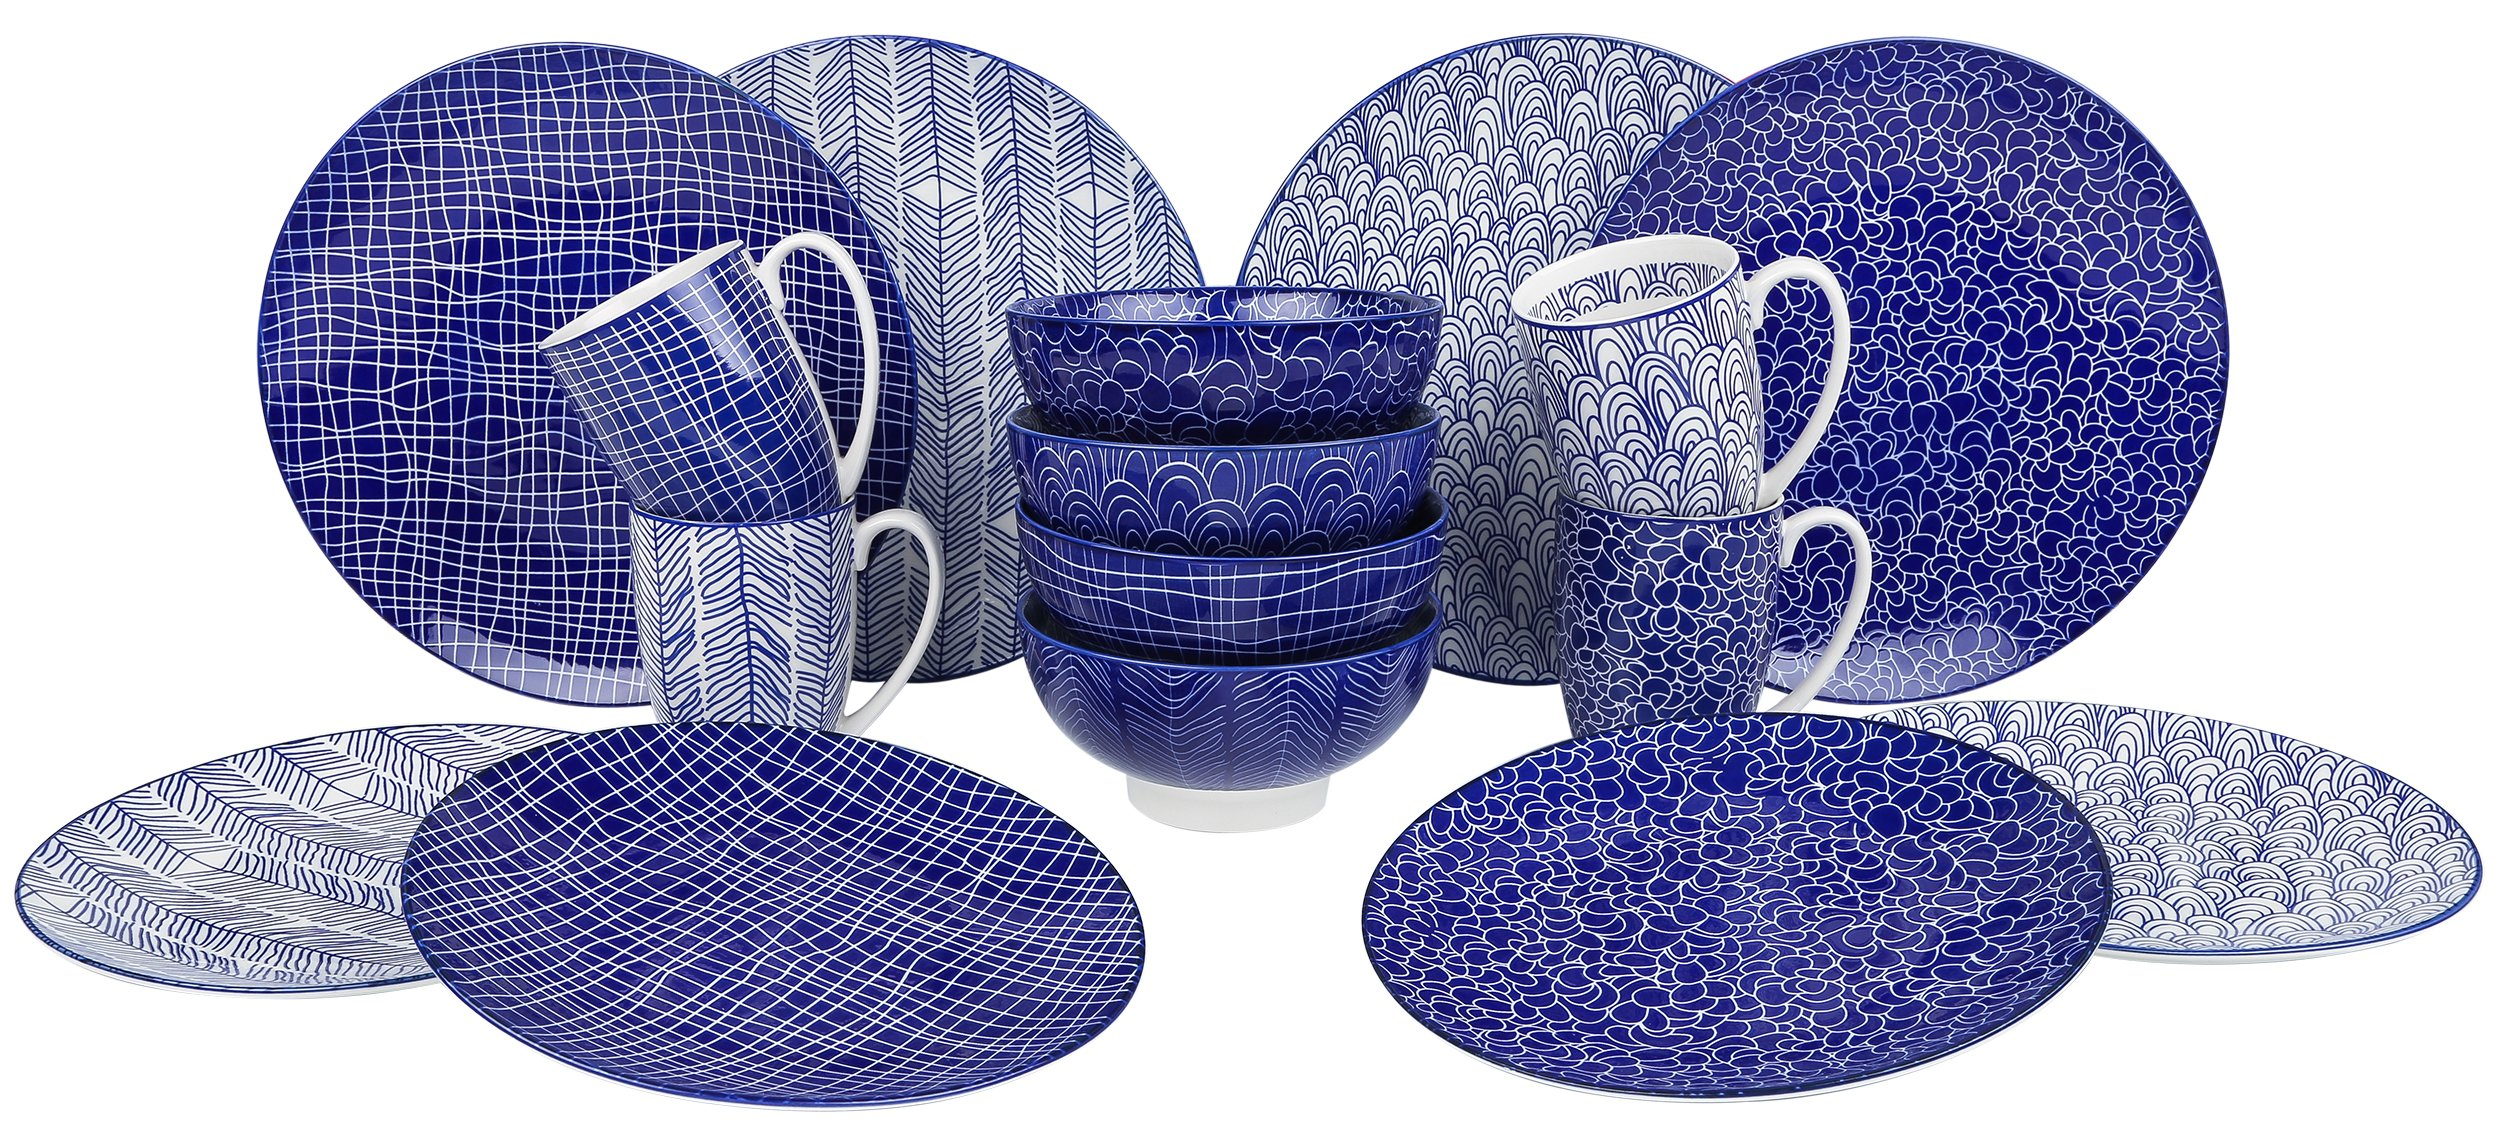 VANCASSO Porcelain Ceramic Dinnerware Set for 4 person, Blue Pattern Serving Set of Series Takaki with Cup Bowl Plates Platters for Family Dinner, Party, Feast, 16-Pieces, Blue - SAFE MATERIAL IN HIGH QUALITY - FDA certified fine porcelain with non-lead and non-cadmium, will not be any chemical reaction with the food, ensure your healthy diet. HIGH TEMPERATURE RESISTANCE - Vancasso dinnerware is made of Refined ceramic clay calcined in high temperature. The long-lasting material blocks moisture absorption and prevents cracking. Goes safe in Freezer, Dishwasher and Microwave. UNIQUE AND TREND DESIGN - Blue glazed with four different patterns, features exquisite appearance and fine workmanship, and full of decorative. - kitchen-tabletop, kitchen-dining-room, dinnerware-sets - 91RX5uUsD6L -